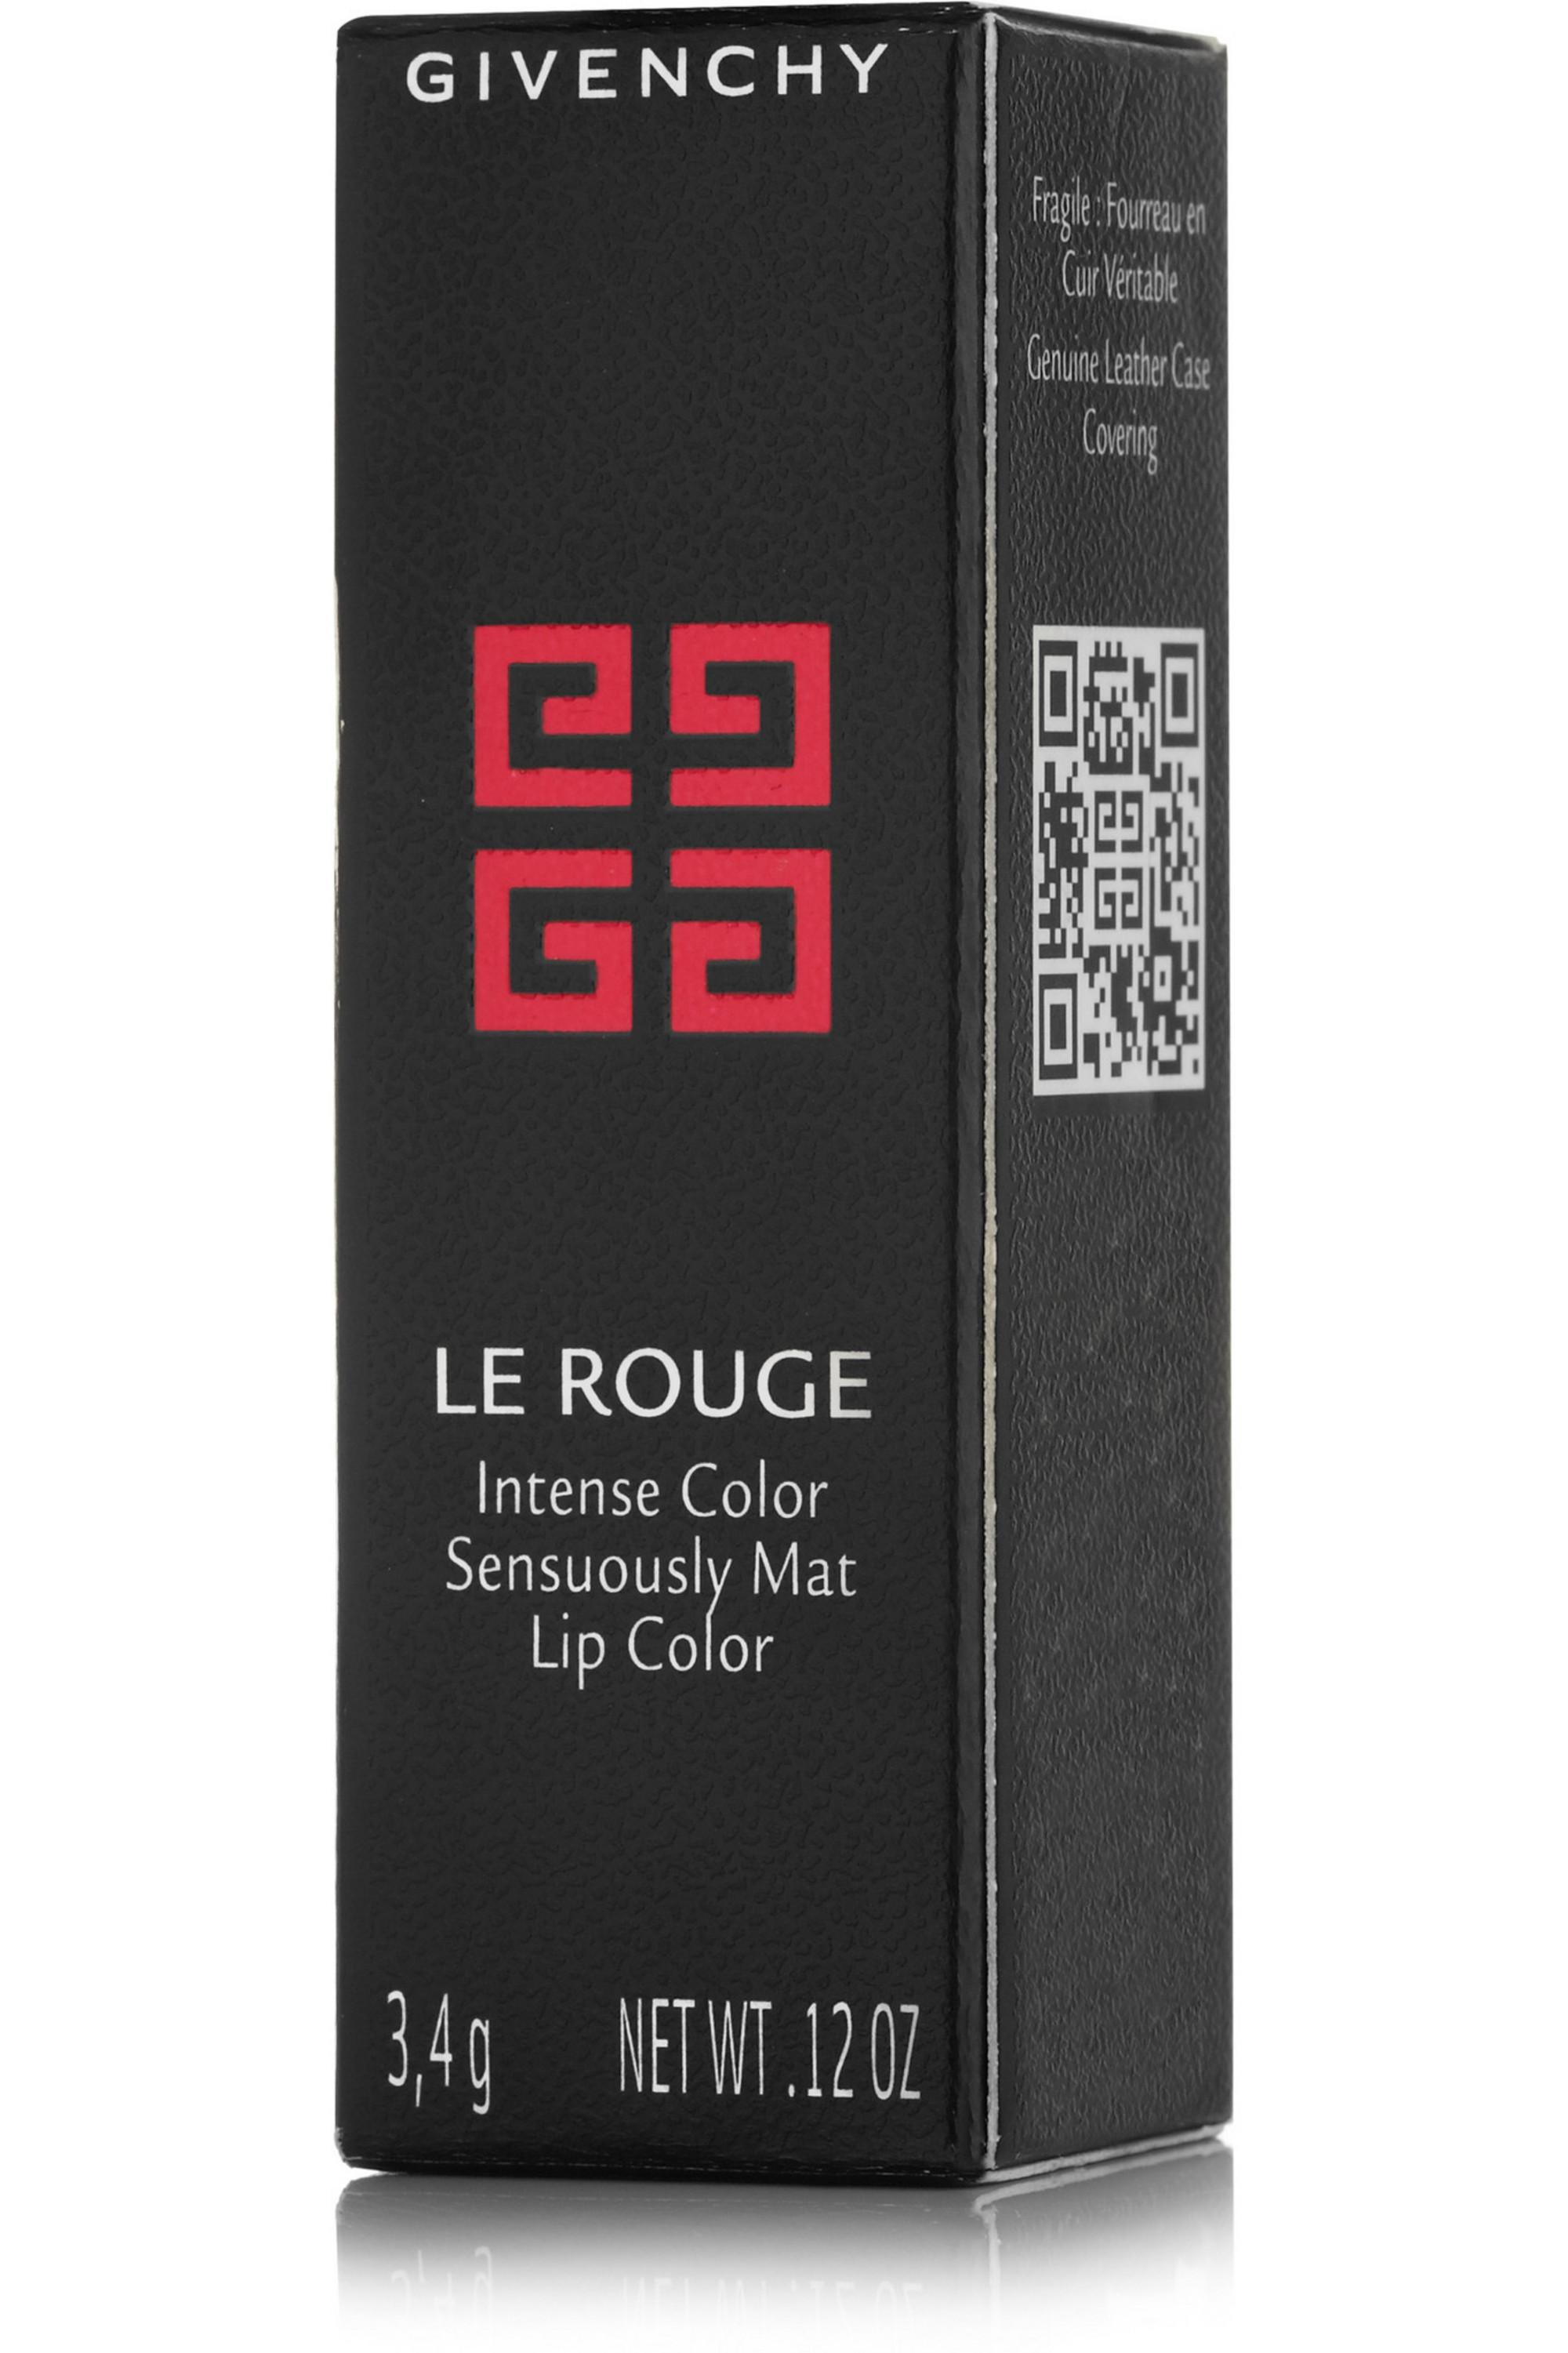 Givenchy Beauty Le Rouge Intense Color Lipstick - Nude Guipure 106